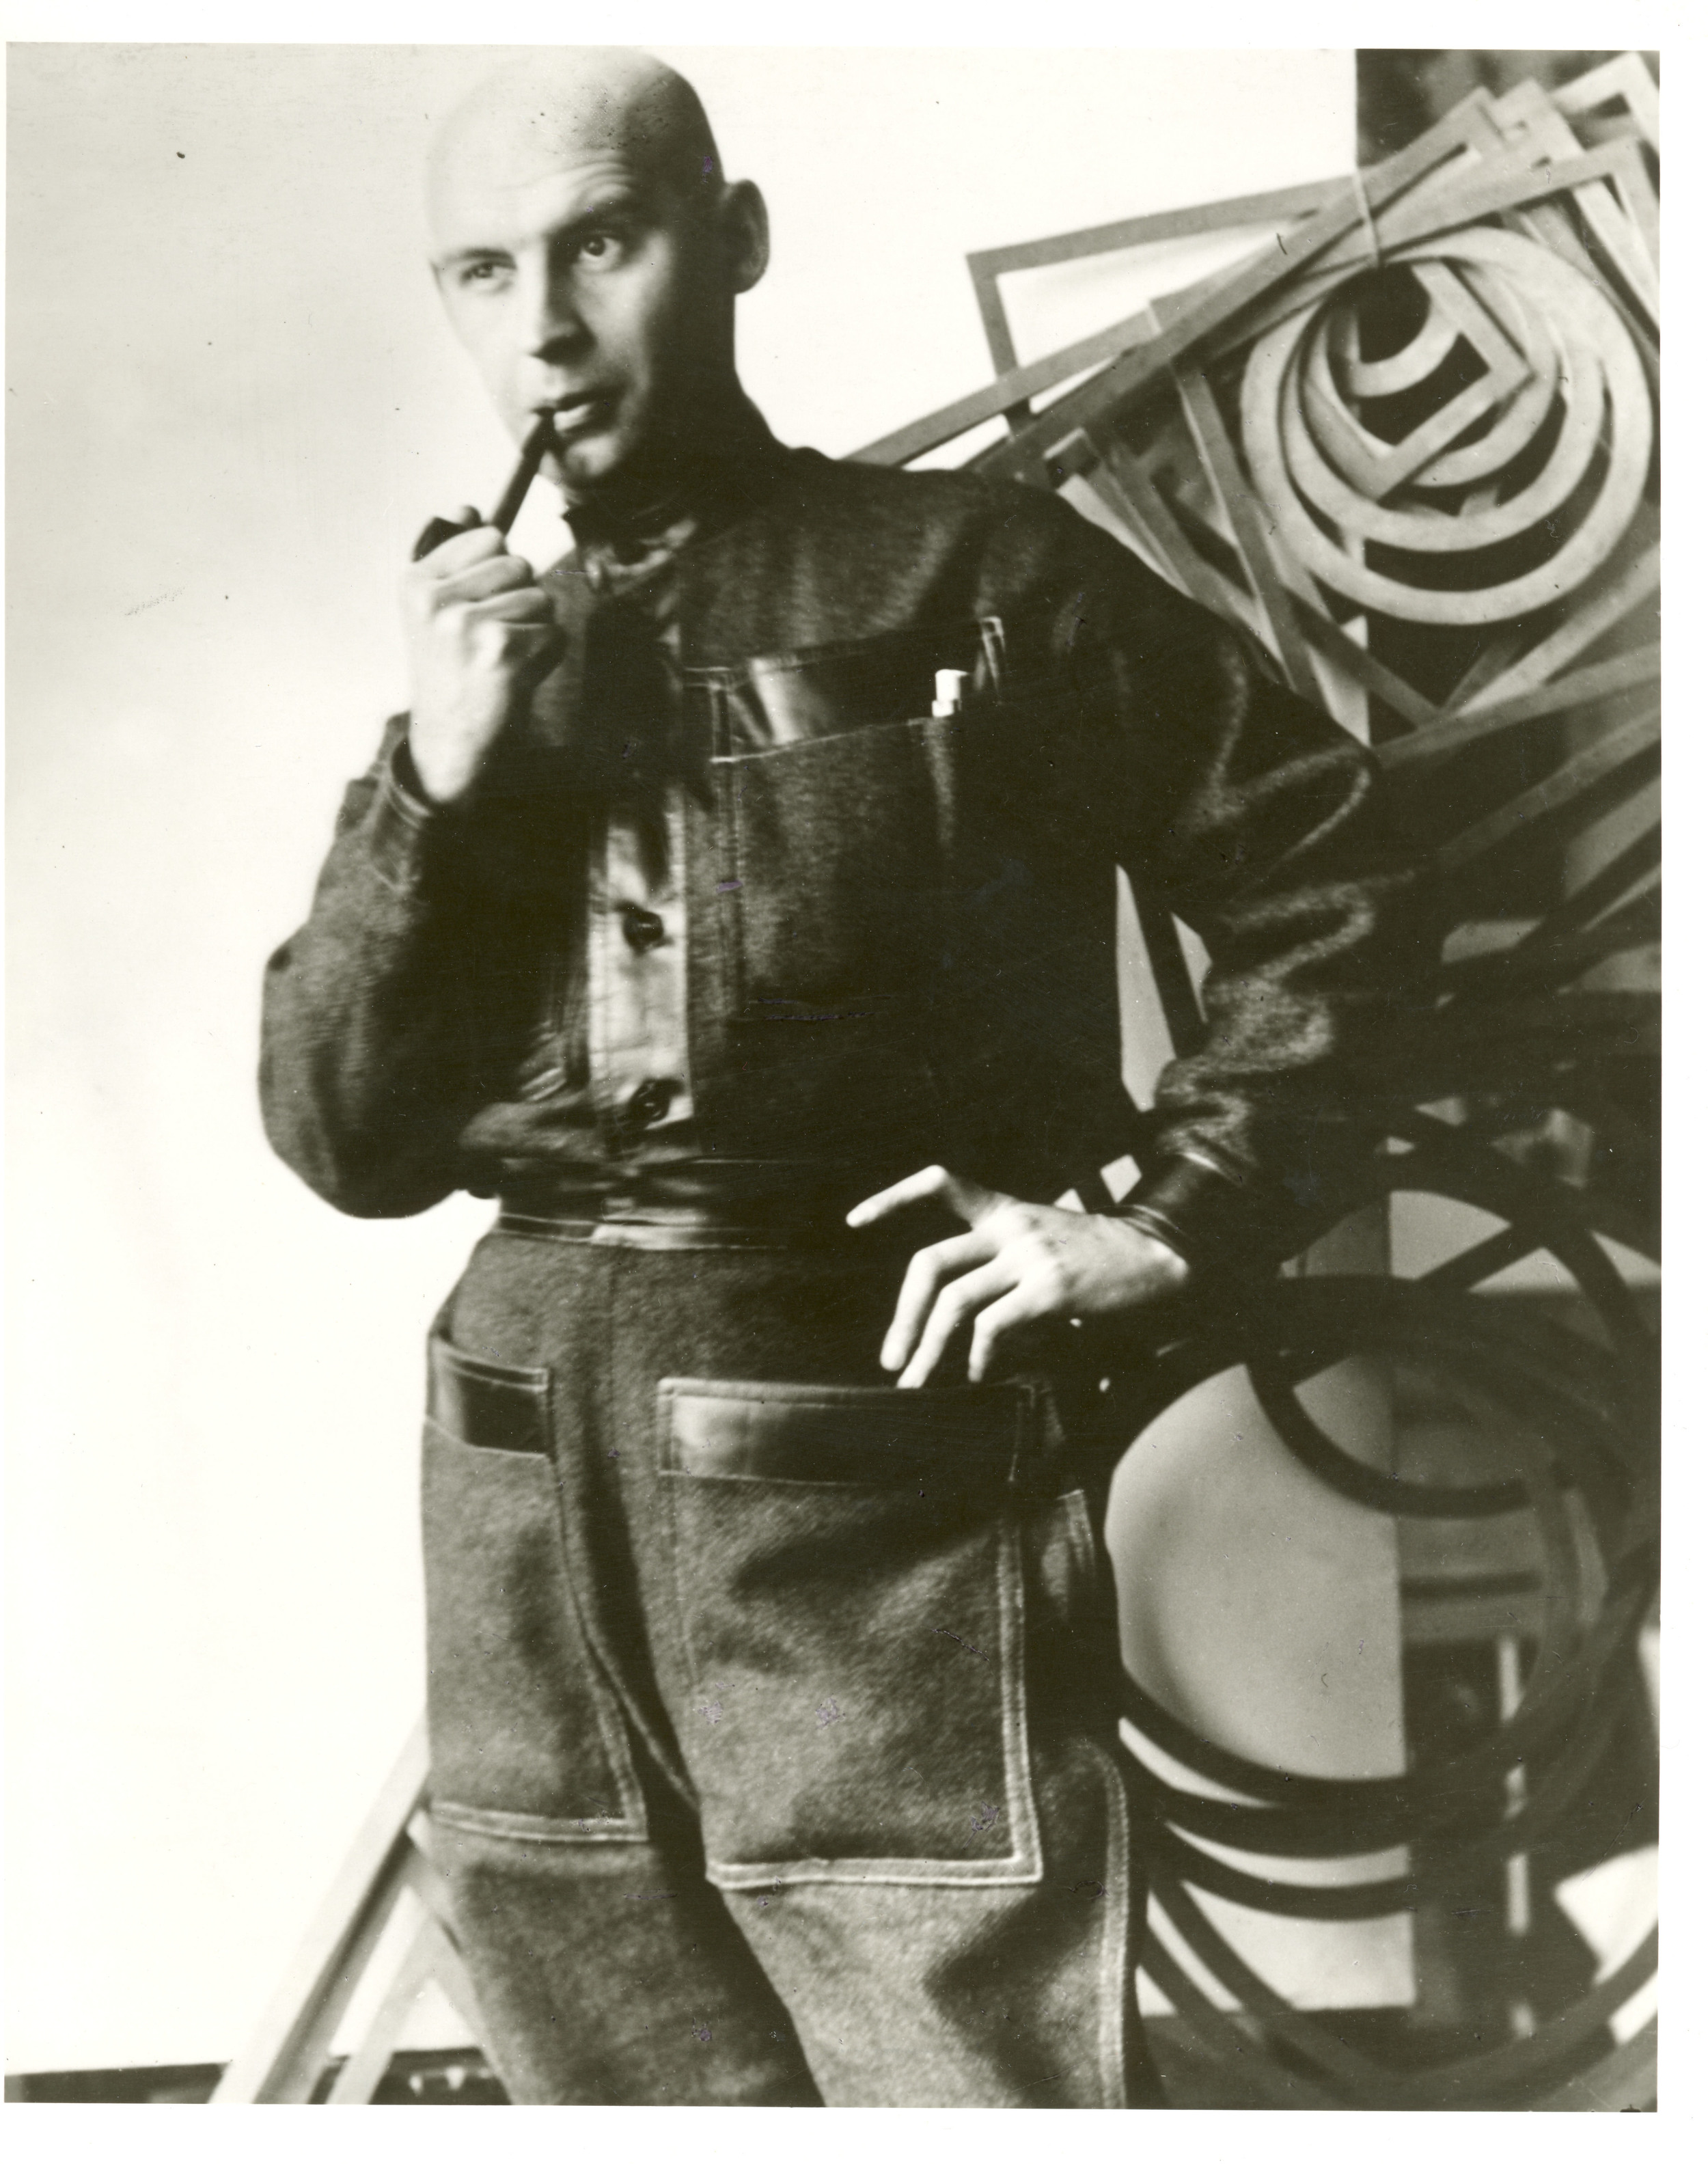 A.-Rodchenko-wearing-a-working-form-designed-by-him-1924.jpg